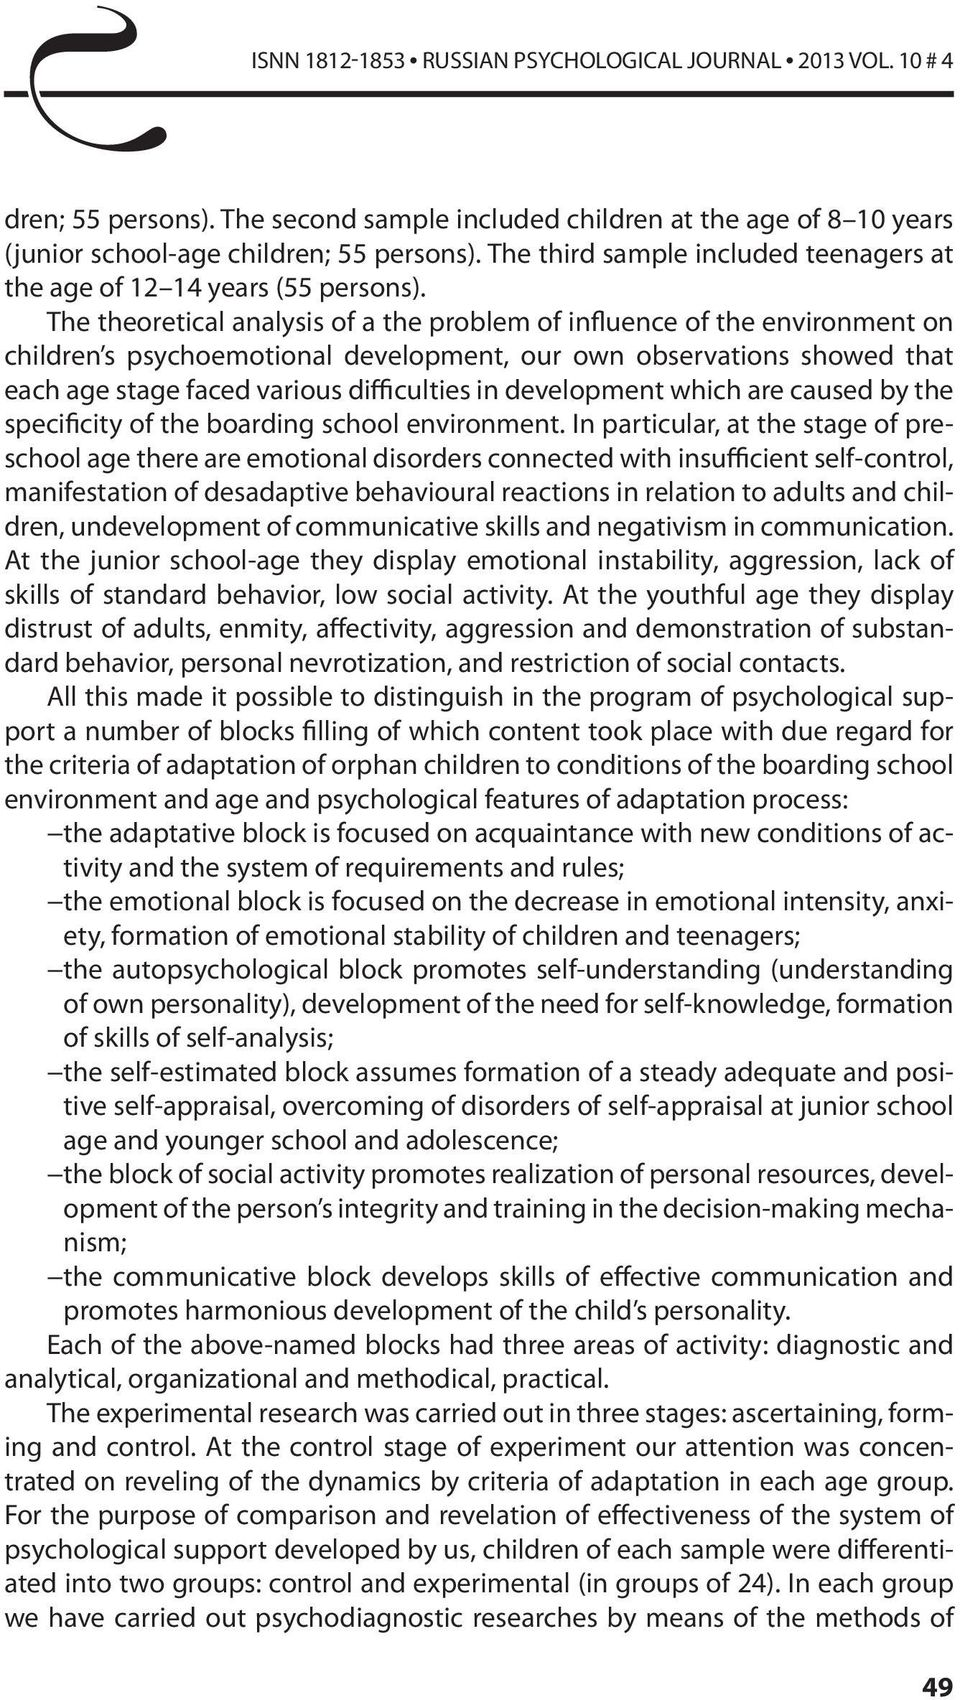 The theoretical analysis of a the problem of influence of the environment on children s psychoemotional development, our own observations showed that each age stage faced various difficulties in